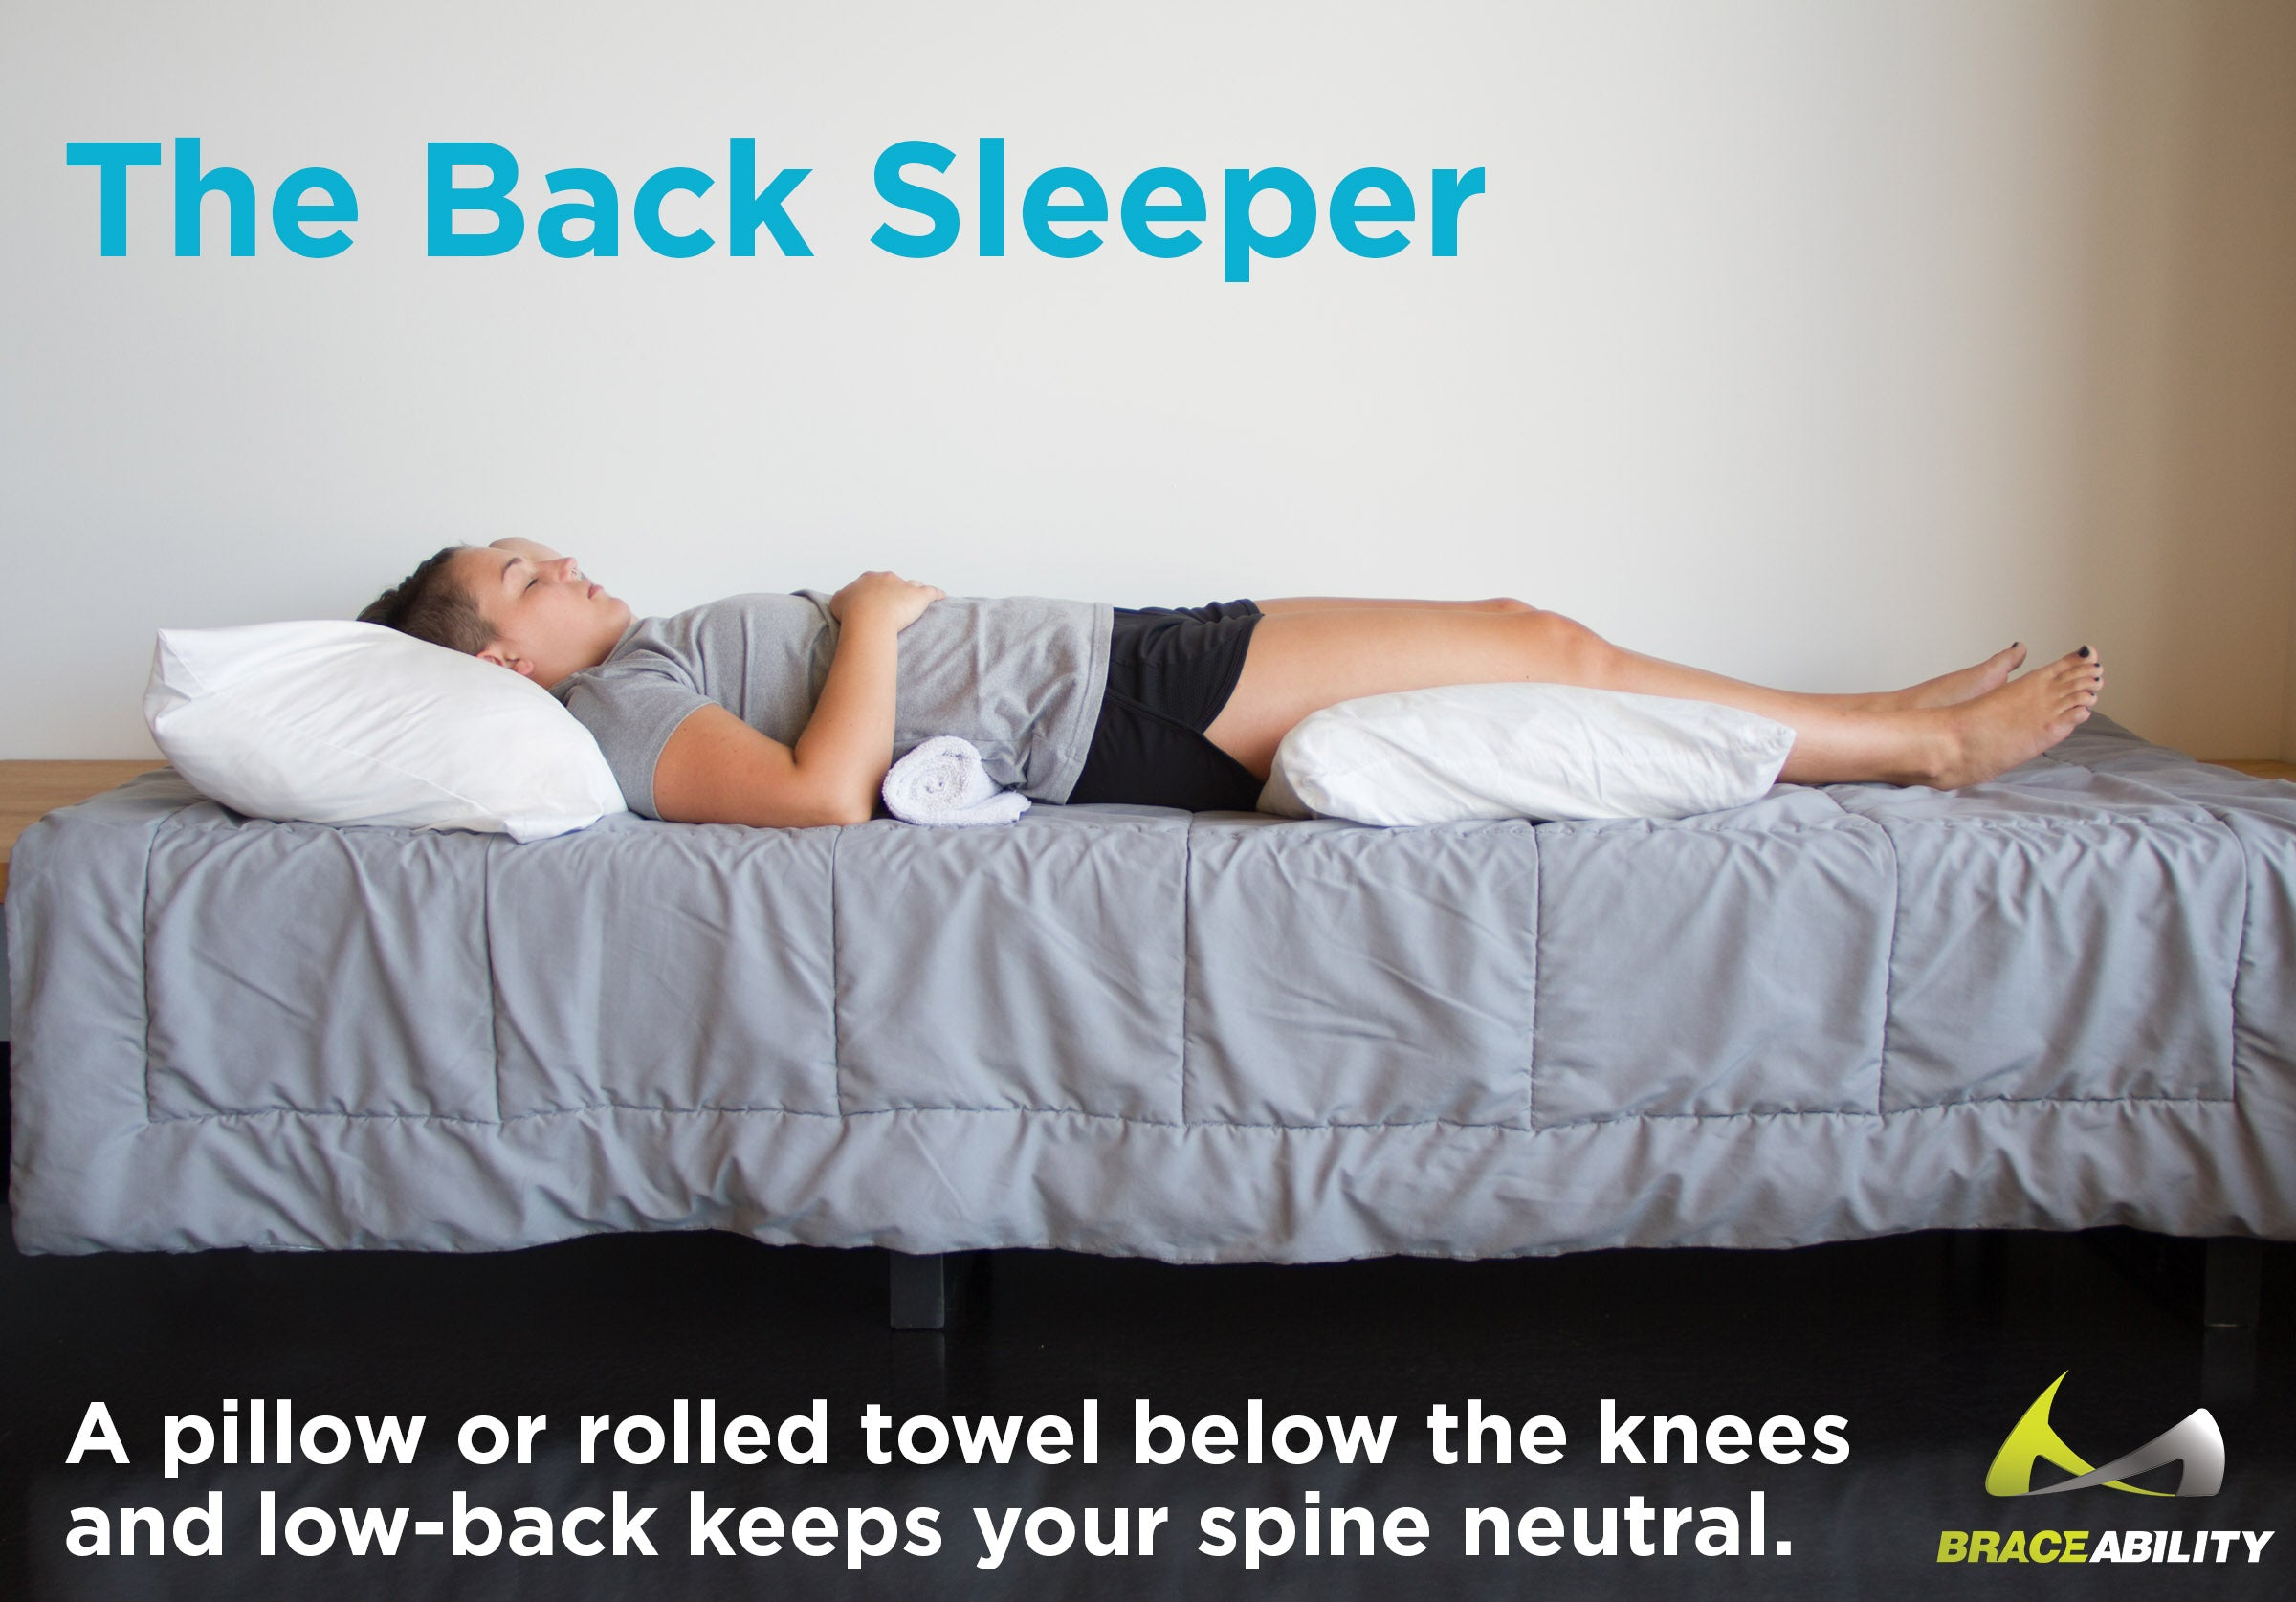 When sleeping on your back keep a pillow under your hips to reduce pain from facet arthropathy